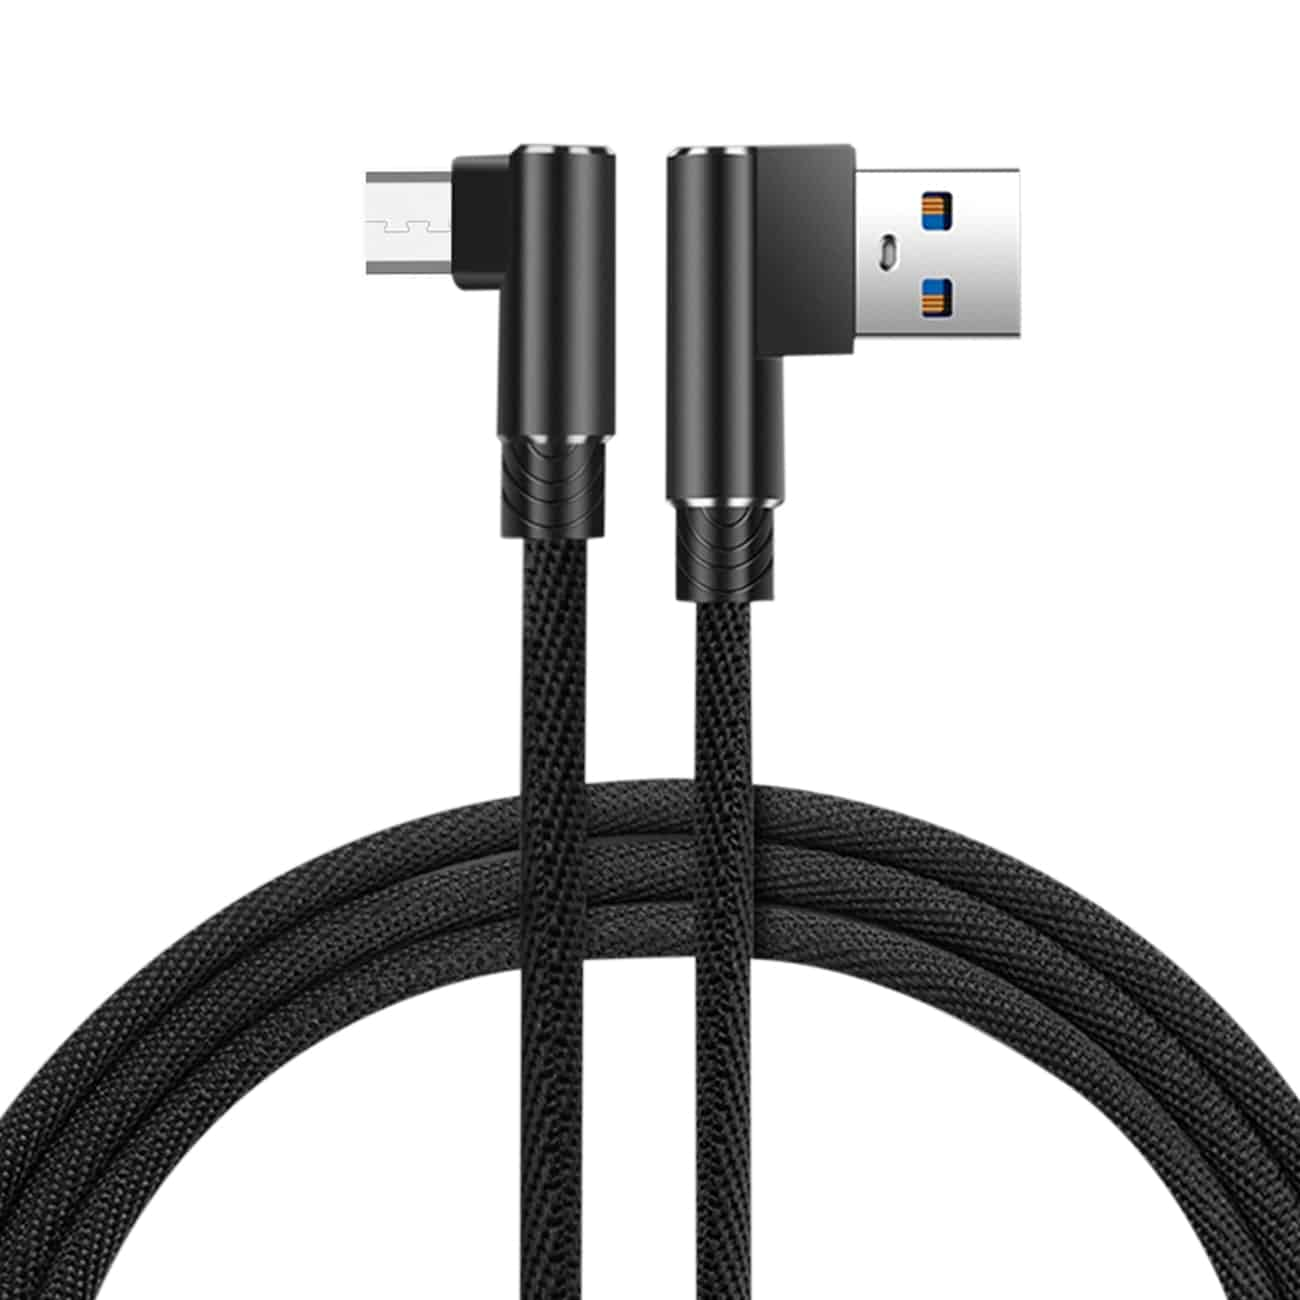 3.3FT Nylon braided Material Mircro USB 2.0 Data Cable In Black